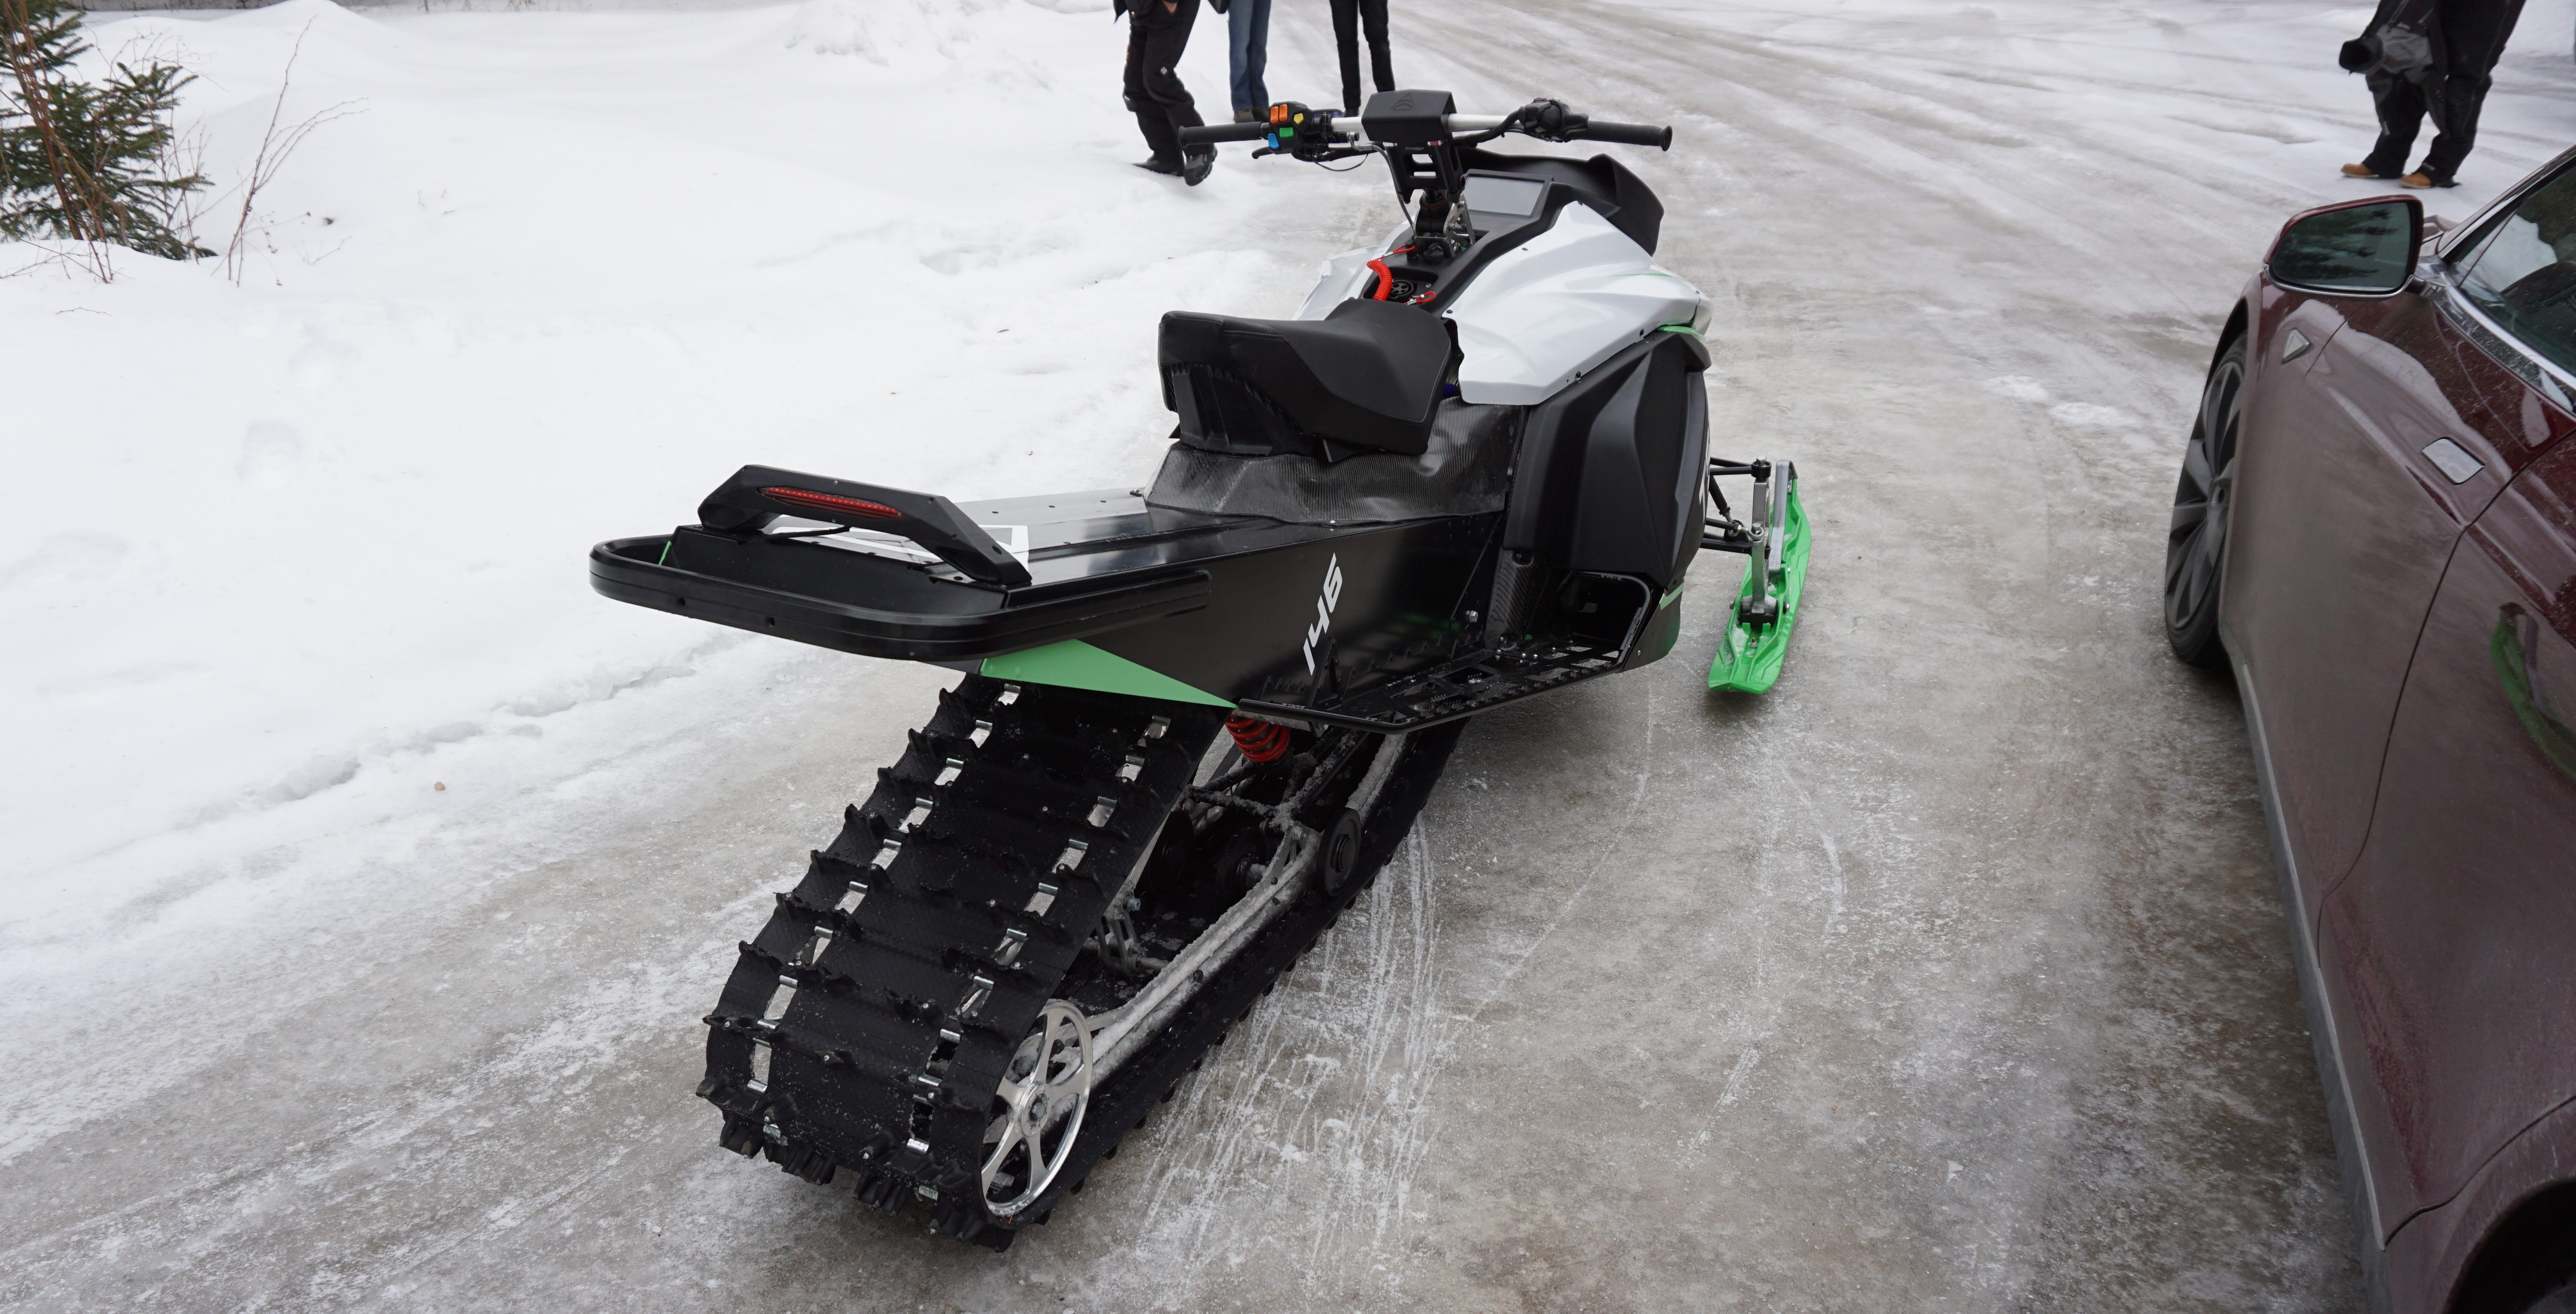 Tesla-inspired Taiga electric snowmobile does 0-60 mph in 3